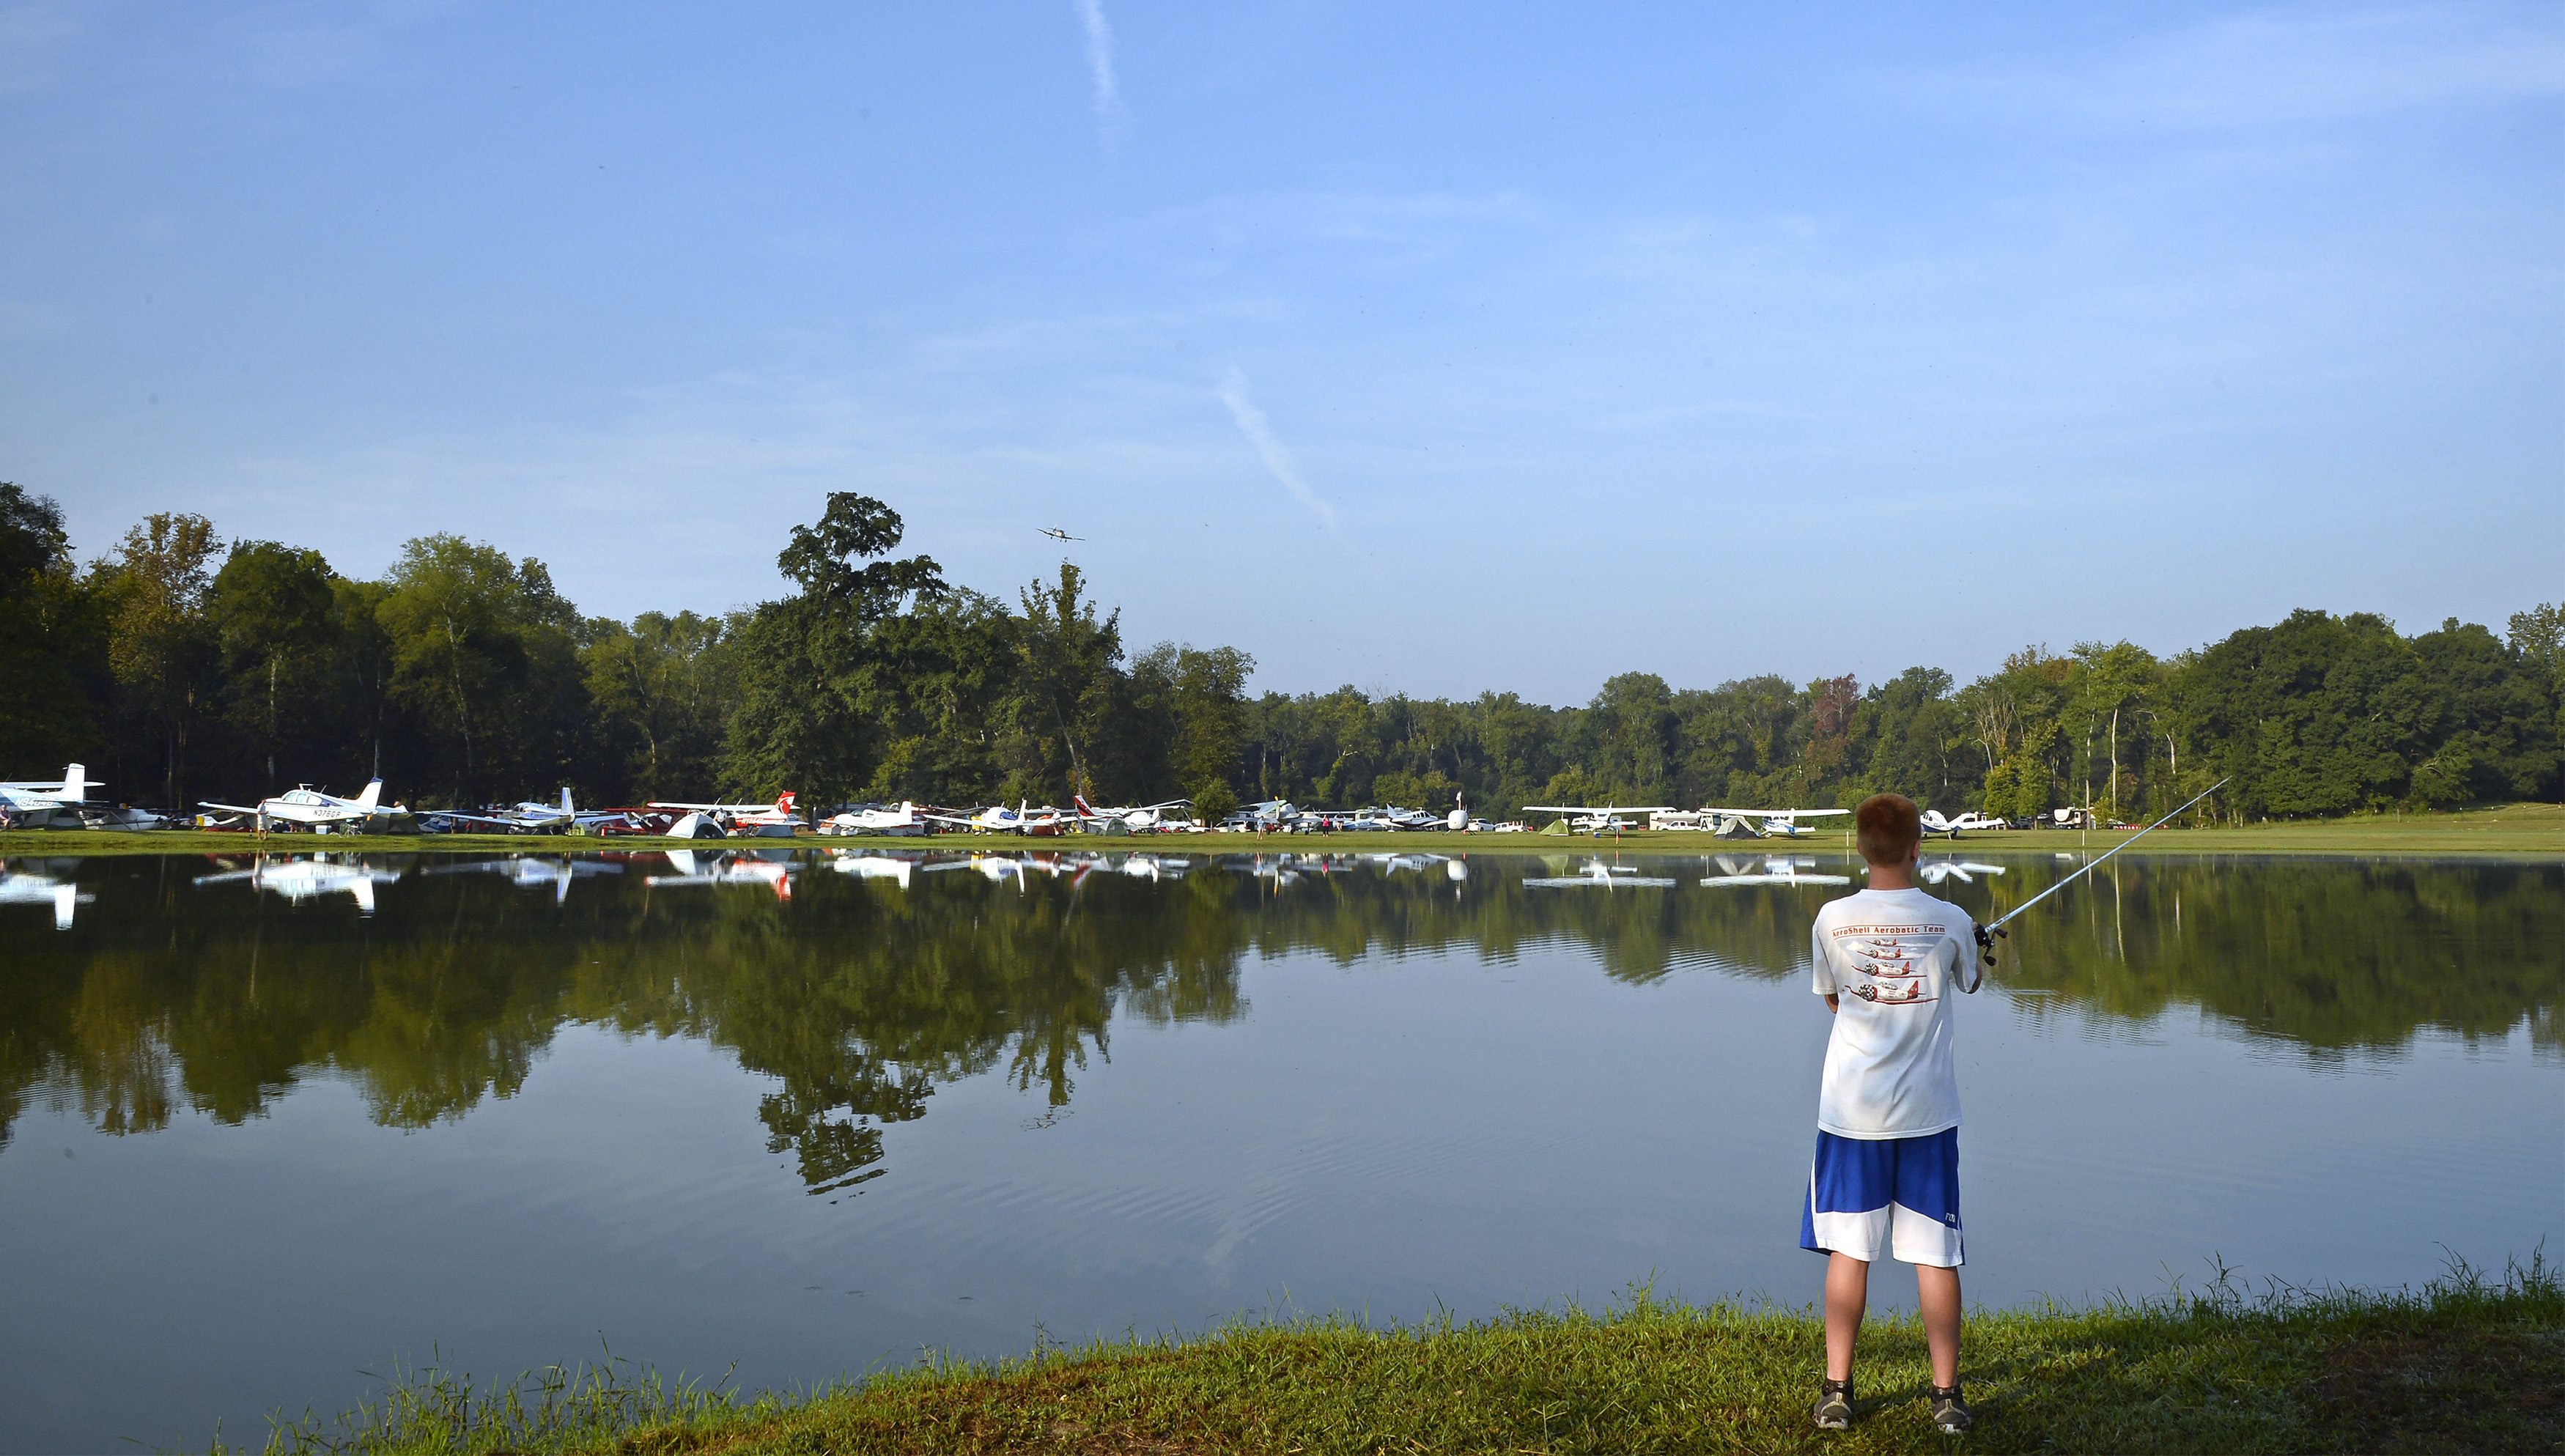 Aircraft are reflected in a pond at Triple Tree Aerodrome where Kyle Carden casts for bass during the annual fly-in. Carden and his father Keith flew from their Irvington, Alabama, home in their Stinson Voyager, an airplane that is now serving the family's fourth generation. Photo by David Tulis.